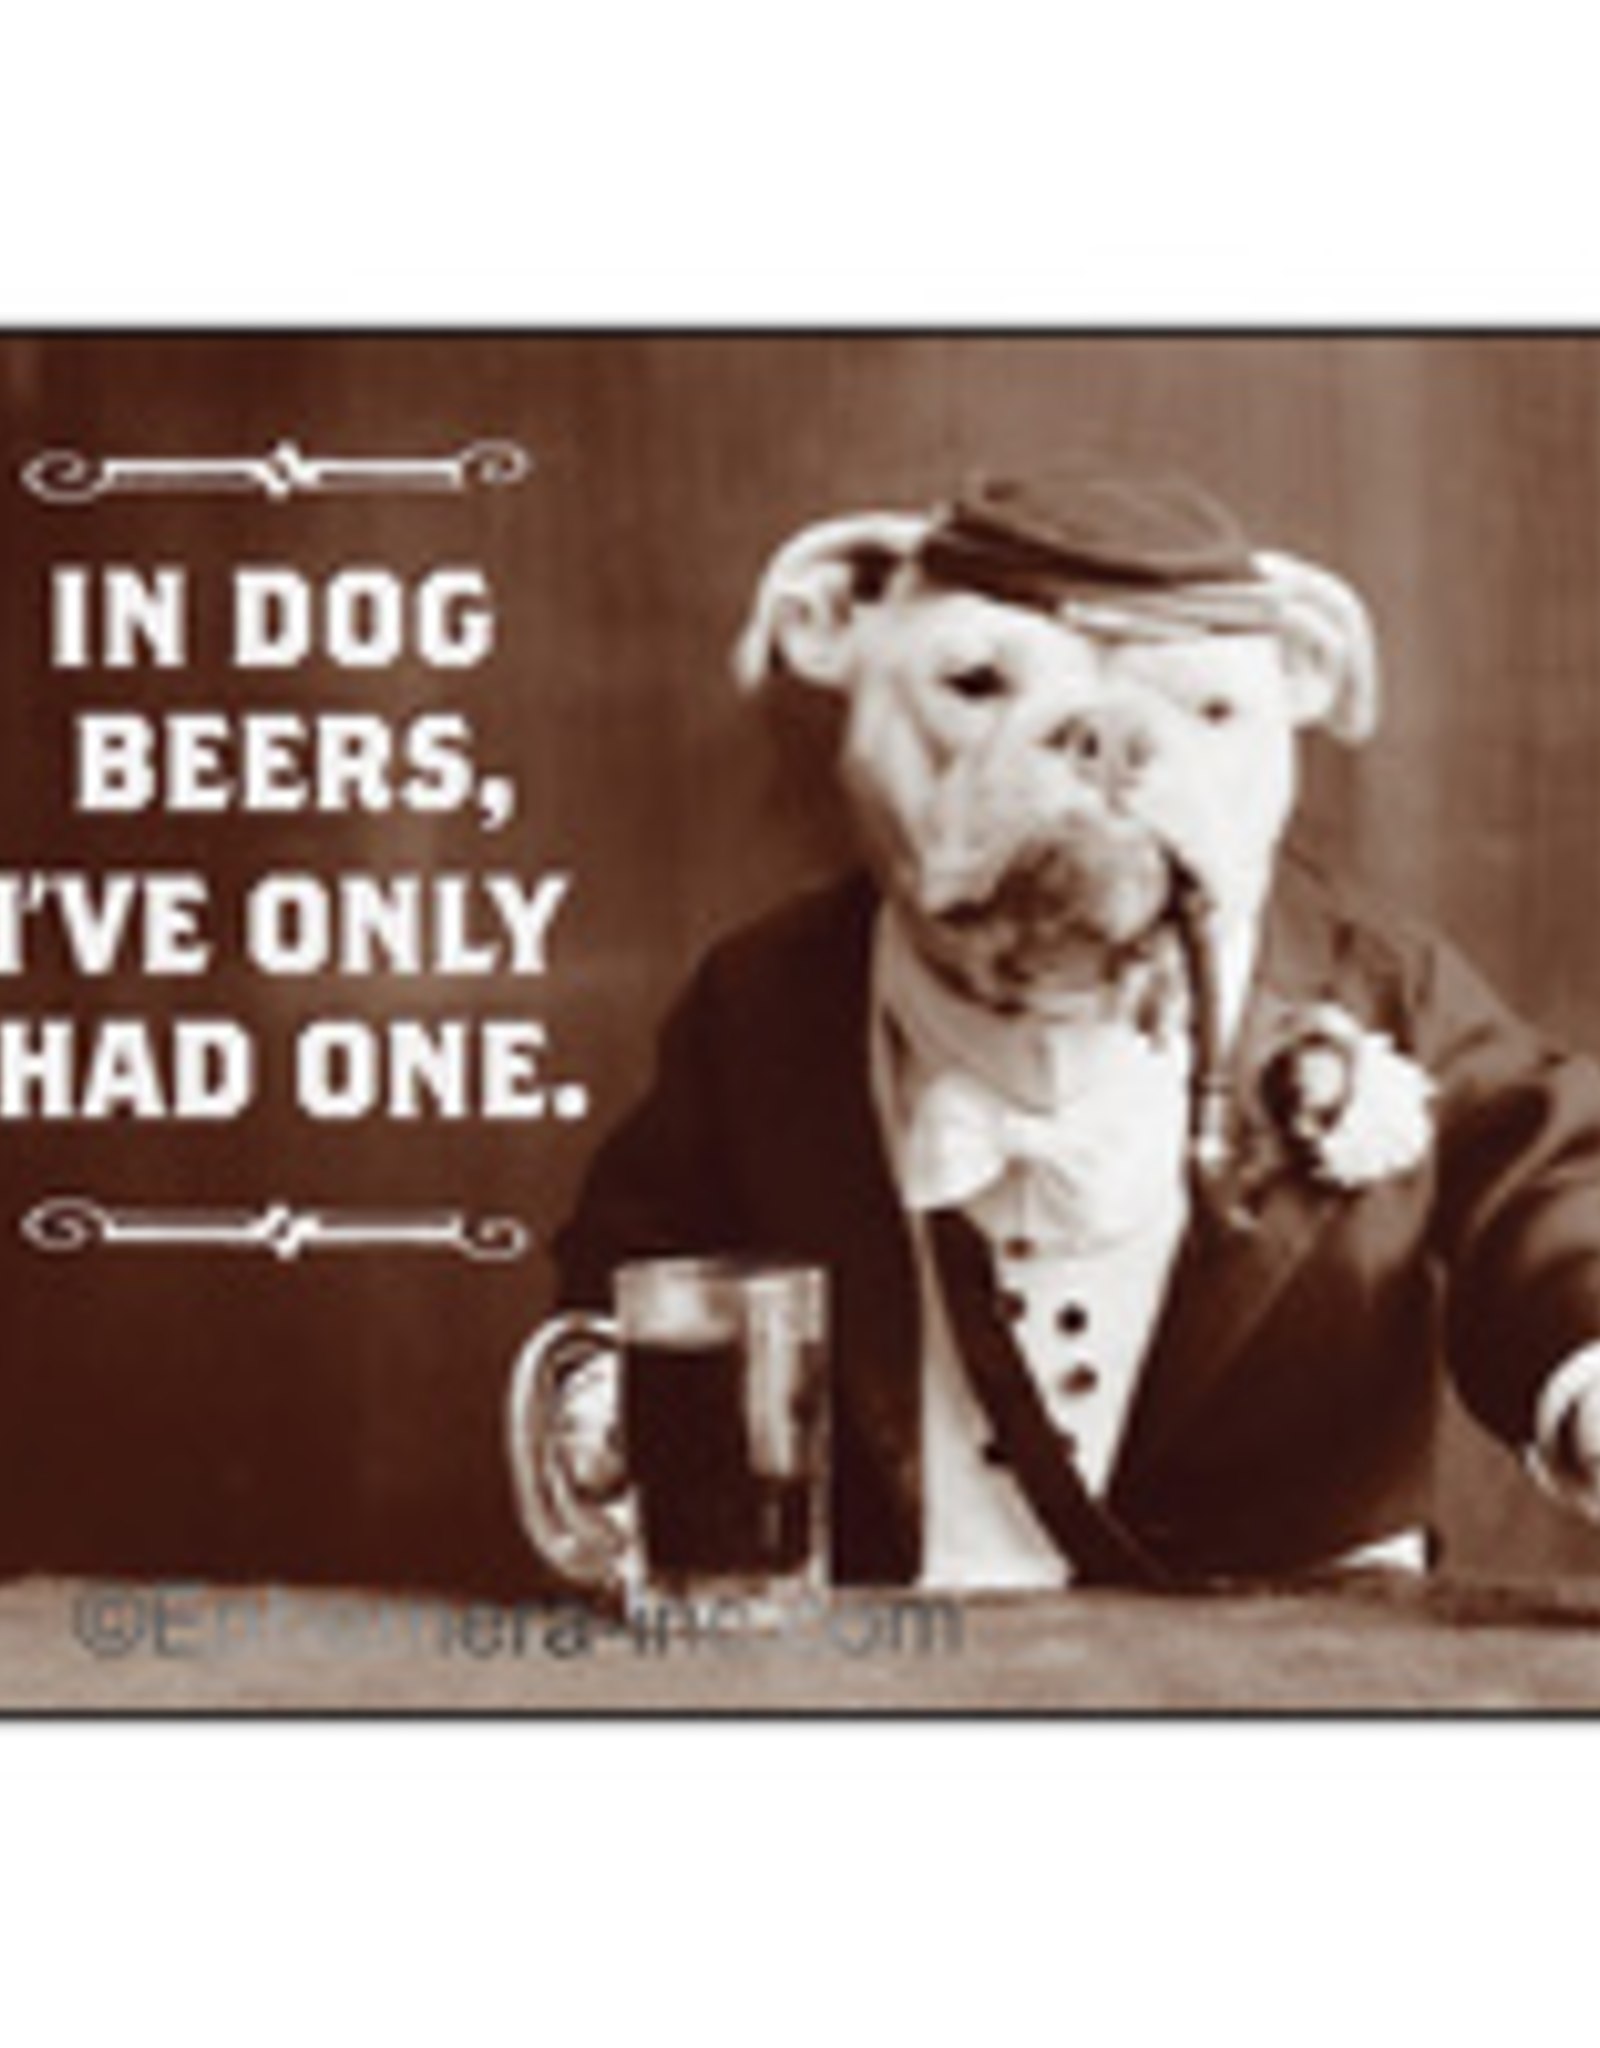 In Dog Beers, I've Only Had One Magnet